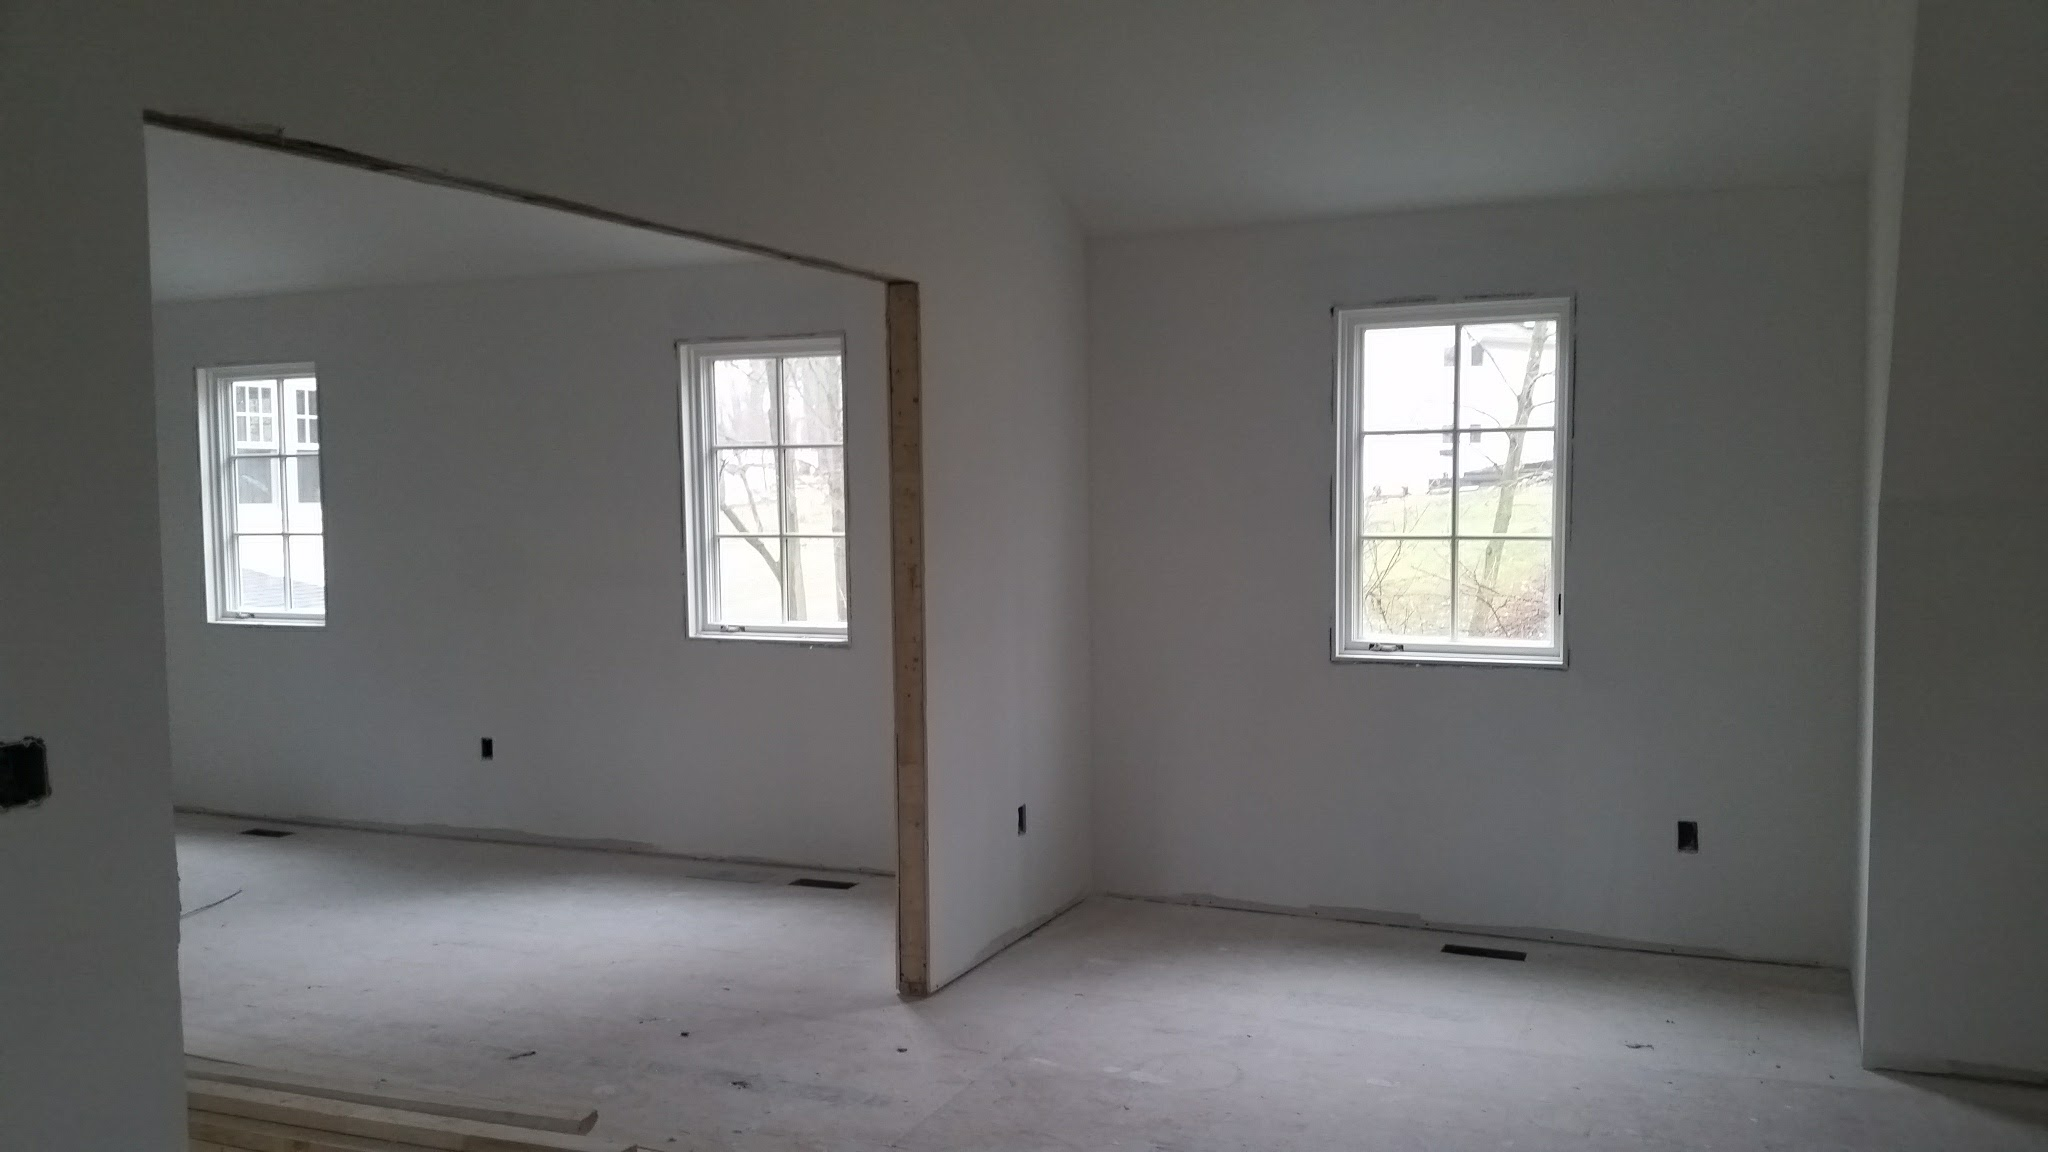 Kid's Wing & Guest Room | Drywall nearly complete